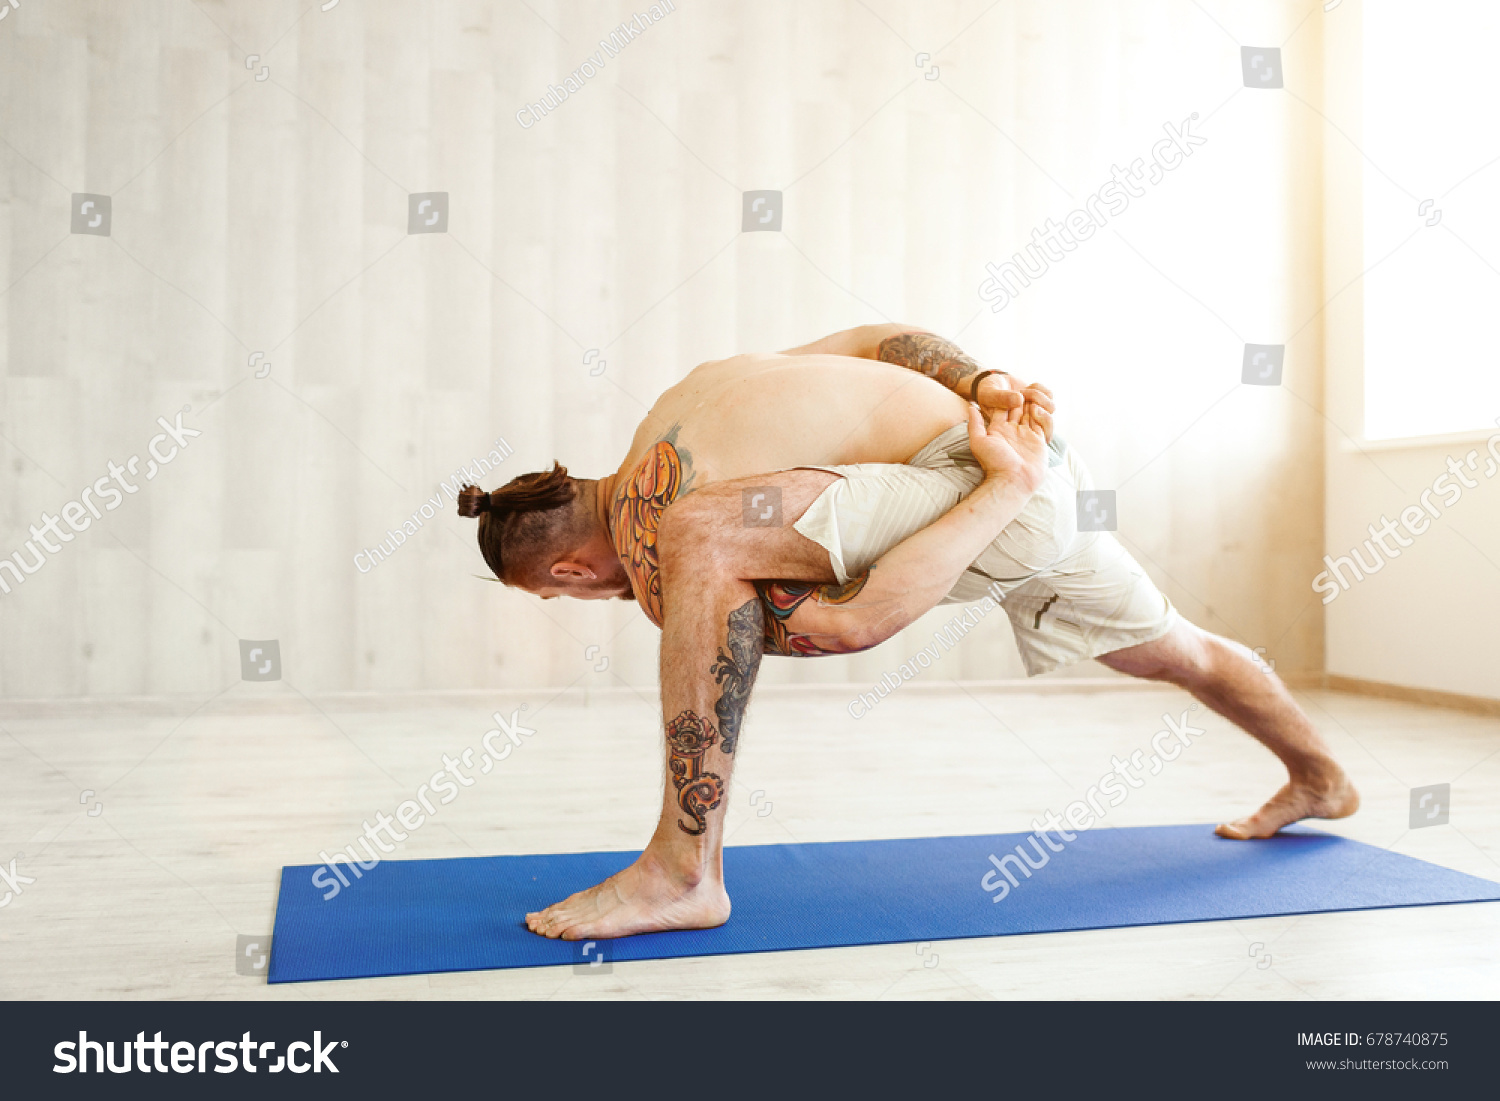 Man Practicing Advanced Yoga Series Yoga Stock Photo Edit Now 678740875